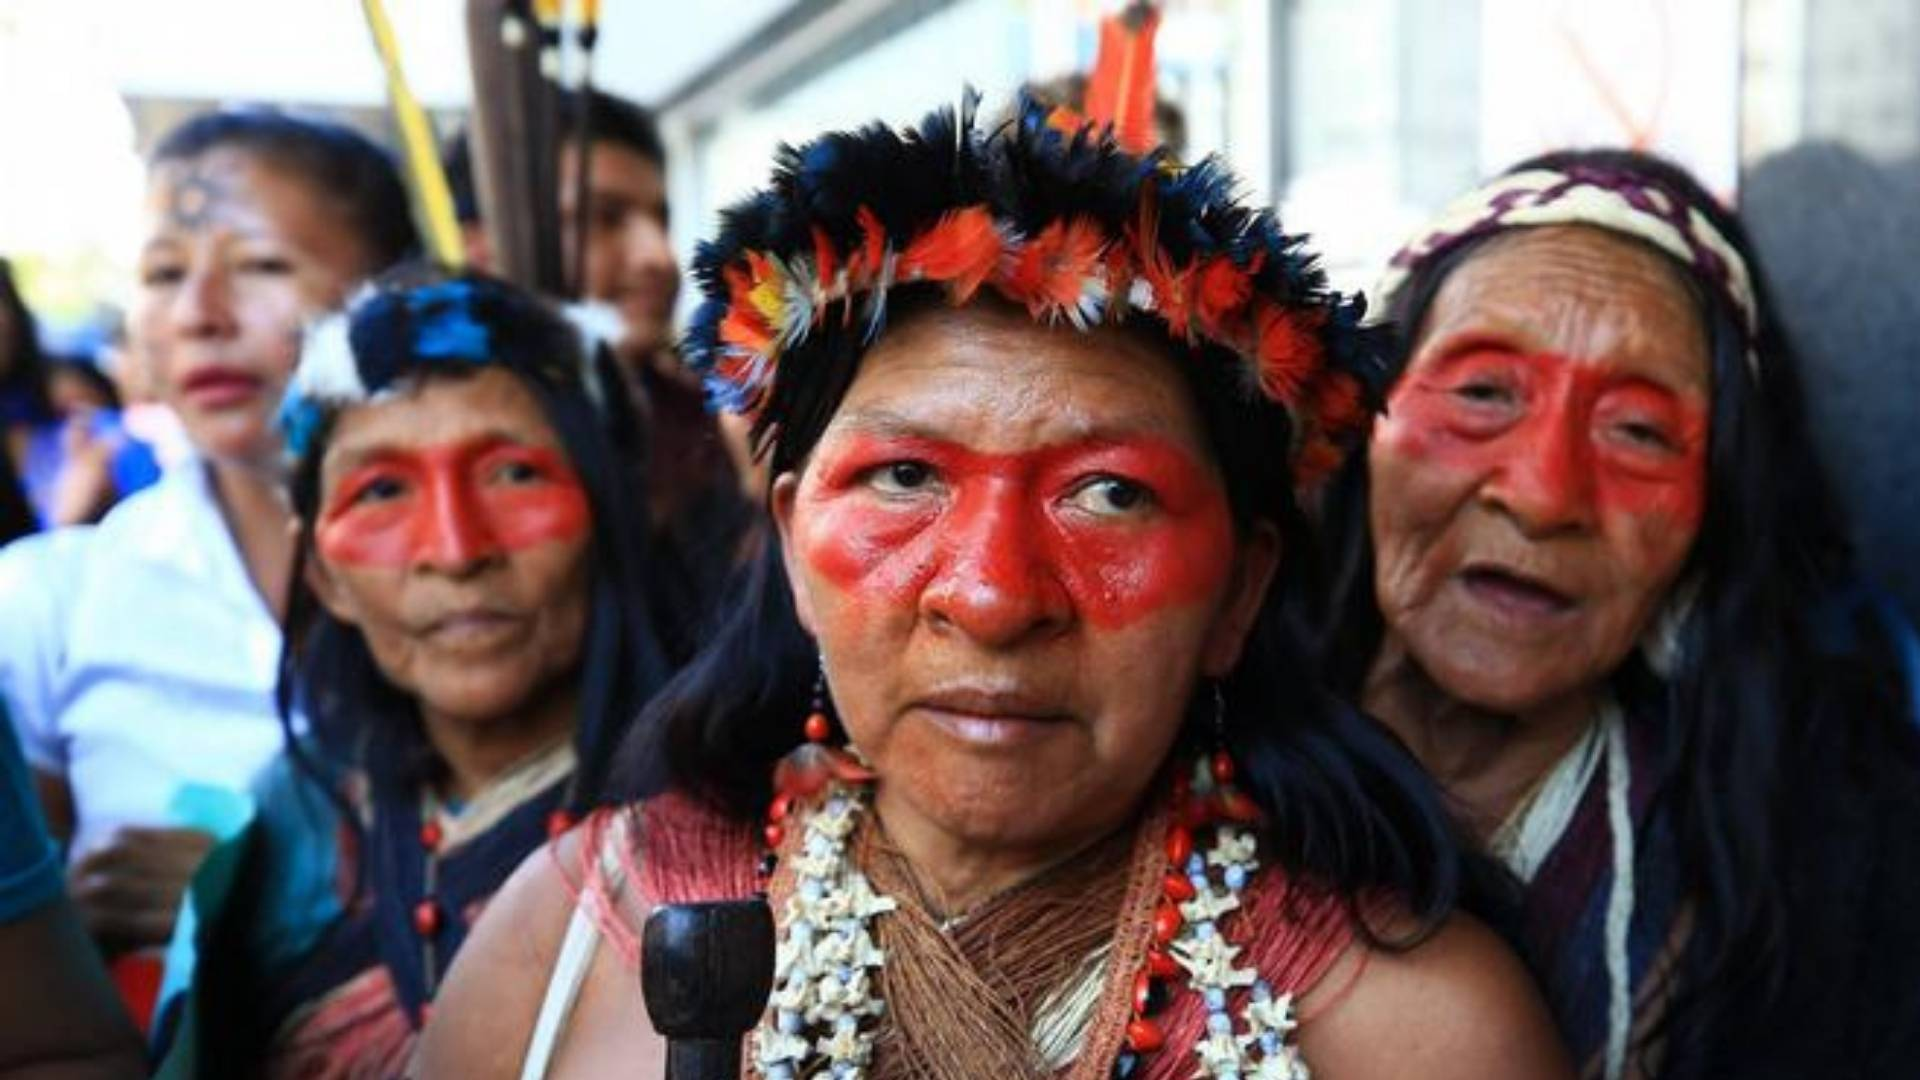 Worani people from the Ecuadorian Amazon protest against an oil project in Quito ©Imago Images